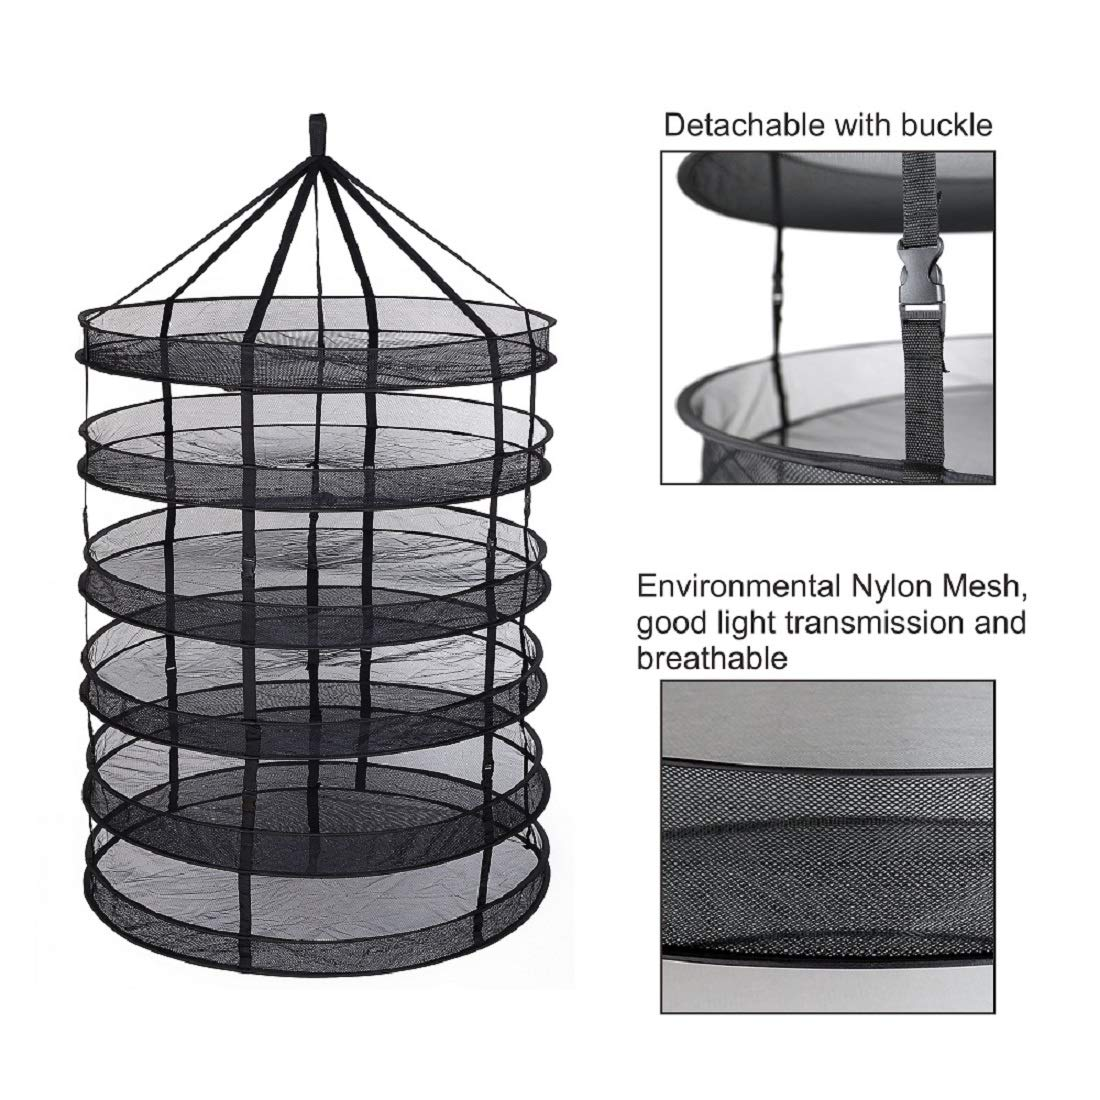 GreenHouser Herb Drying Rack Dry Net 6-Layer Collapsible Mesh Hydroponic Drying Rack Dry Net(3ft 6 Layer) by GreenHouser